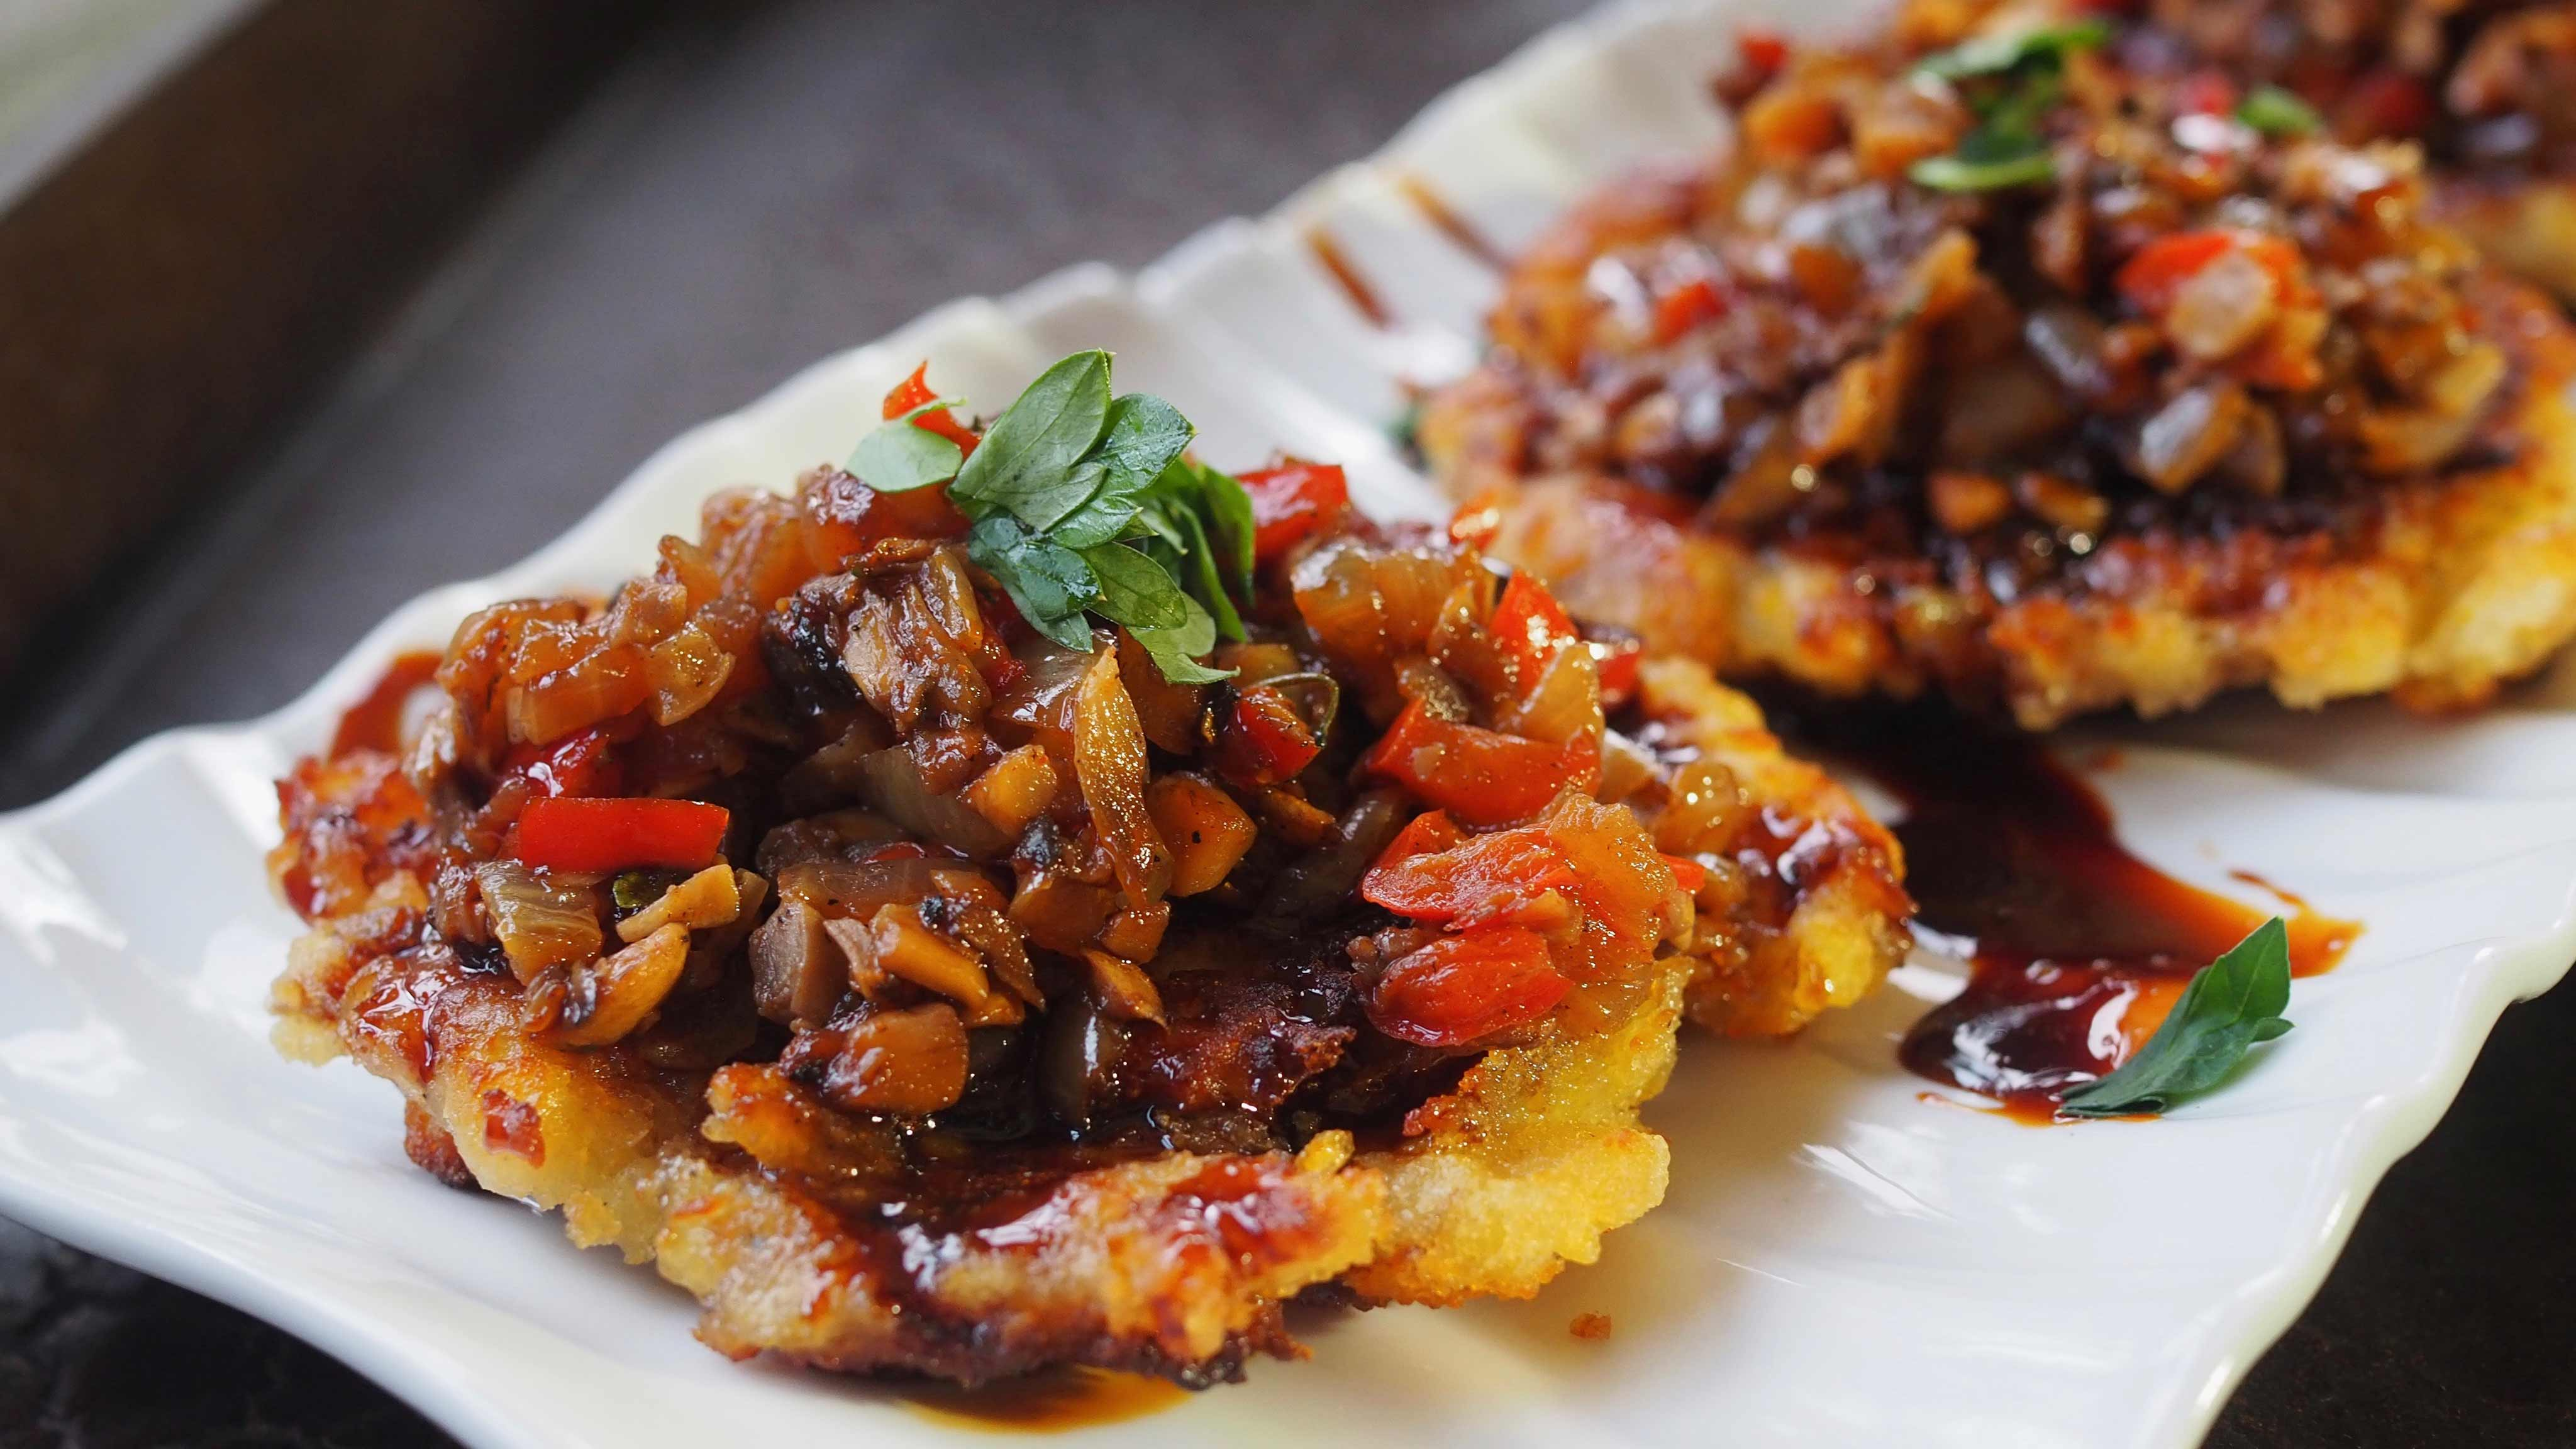 Image for Recipe Mushroom Ratatouille on Potato Pancake with Soy Sauce Reduction